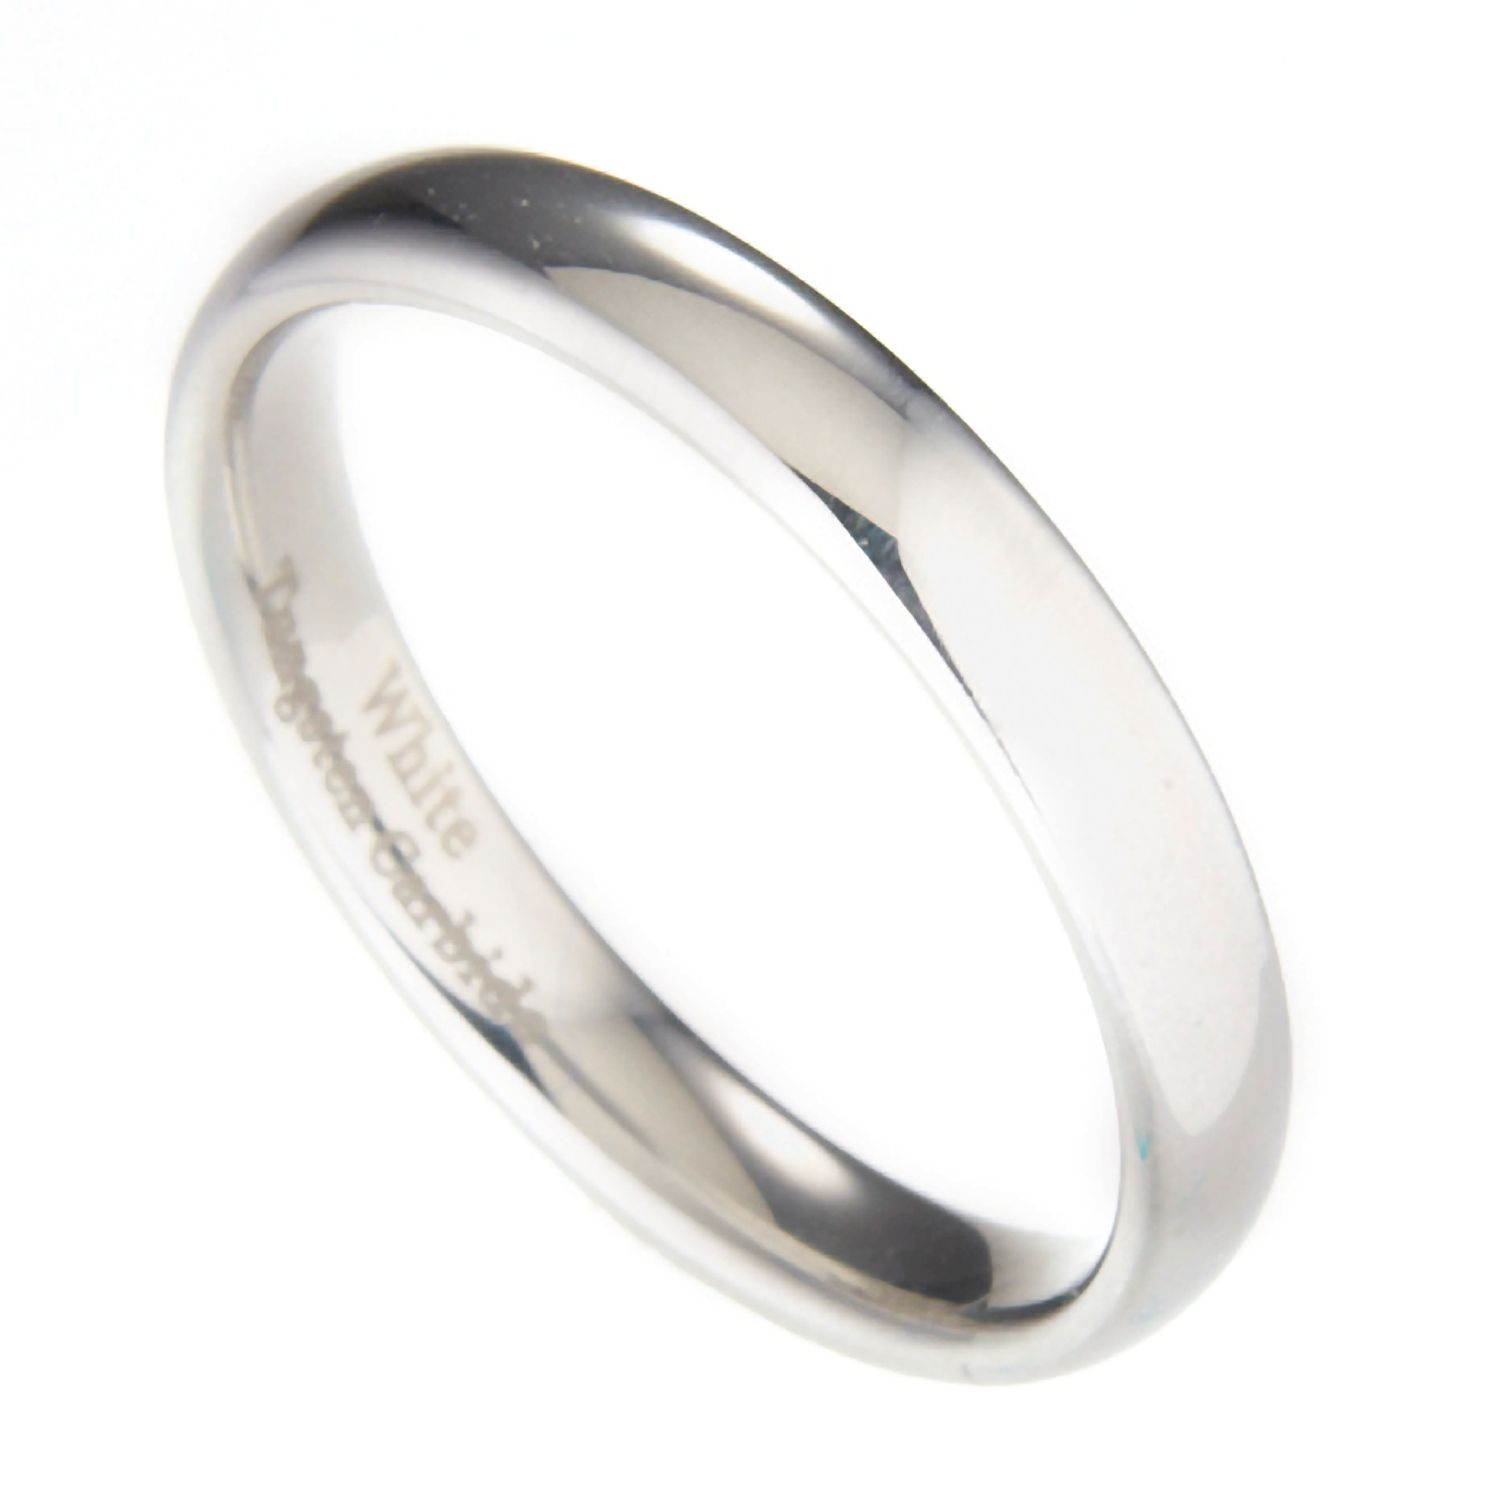 3mm-10mm-White-Tungsten-Carbide-Polished-Wedding-Ring thumbnail 24